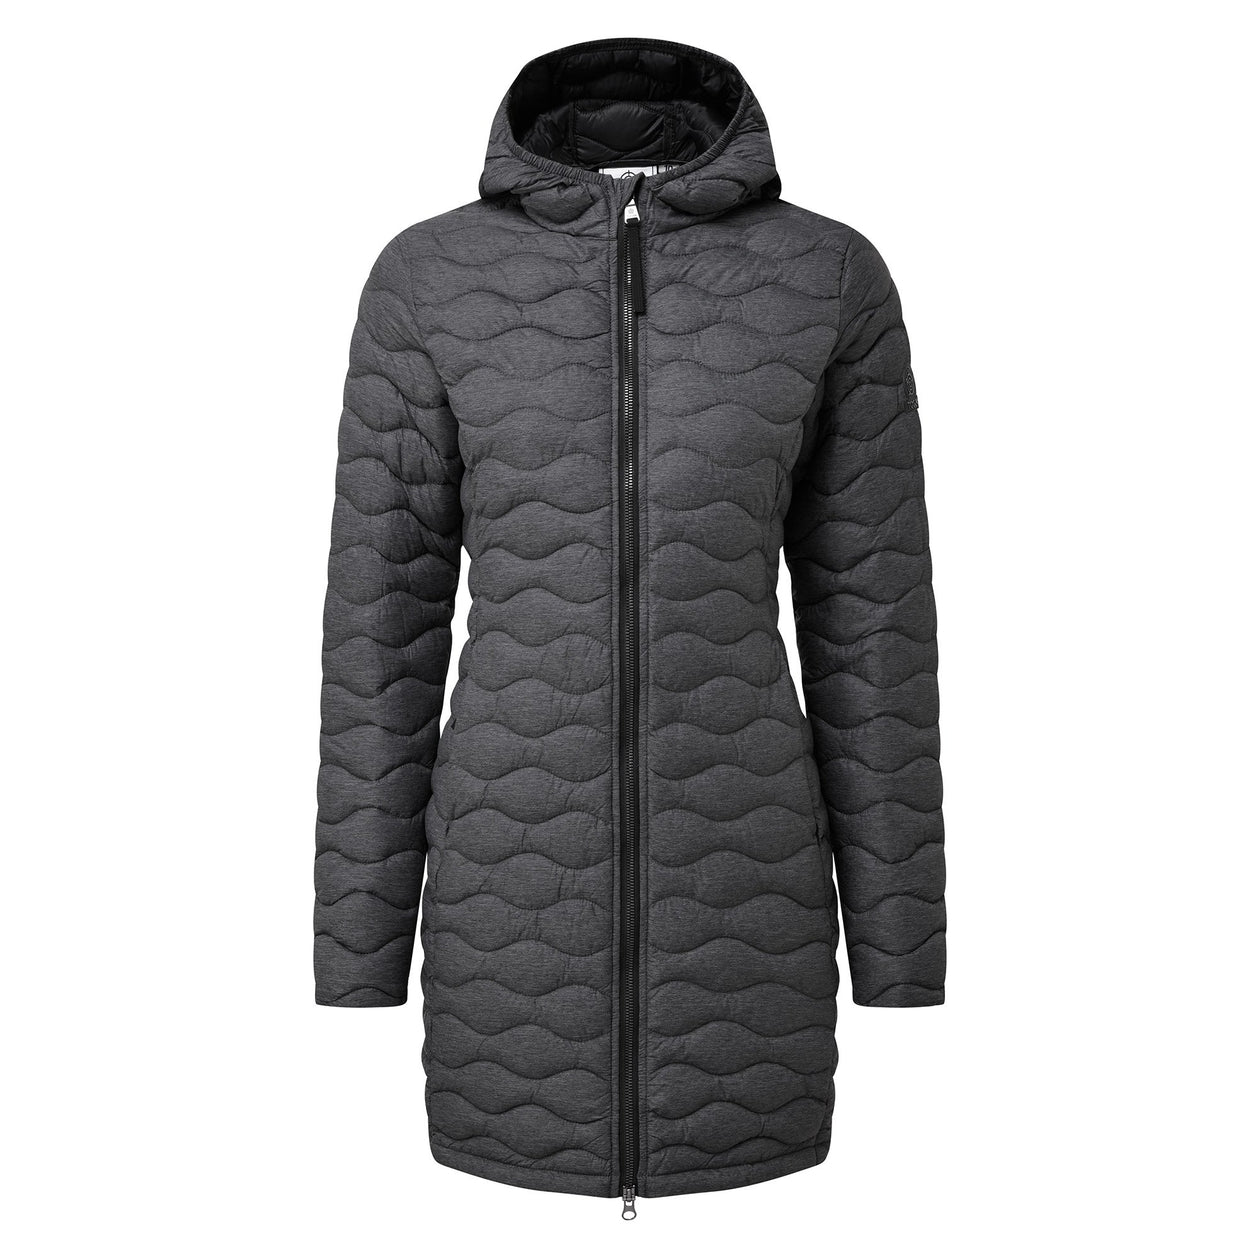 Eastby Womens Thermal Jacket - Grey Marl image 8